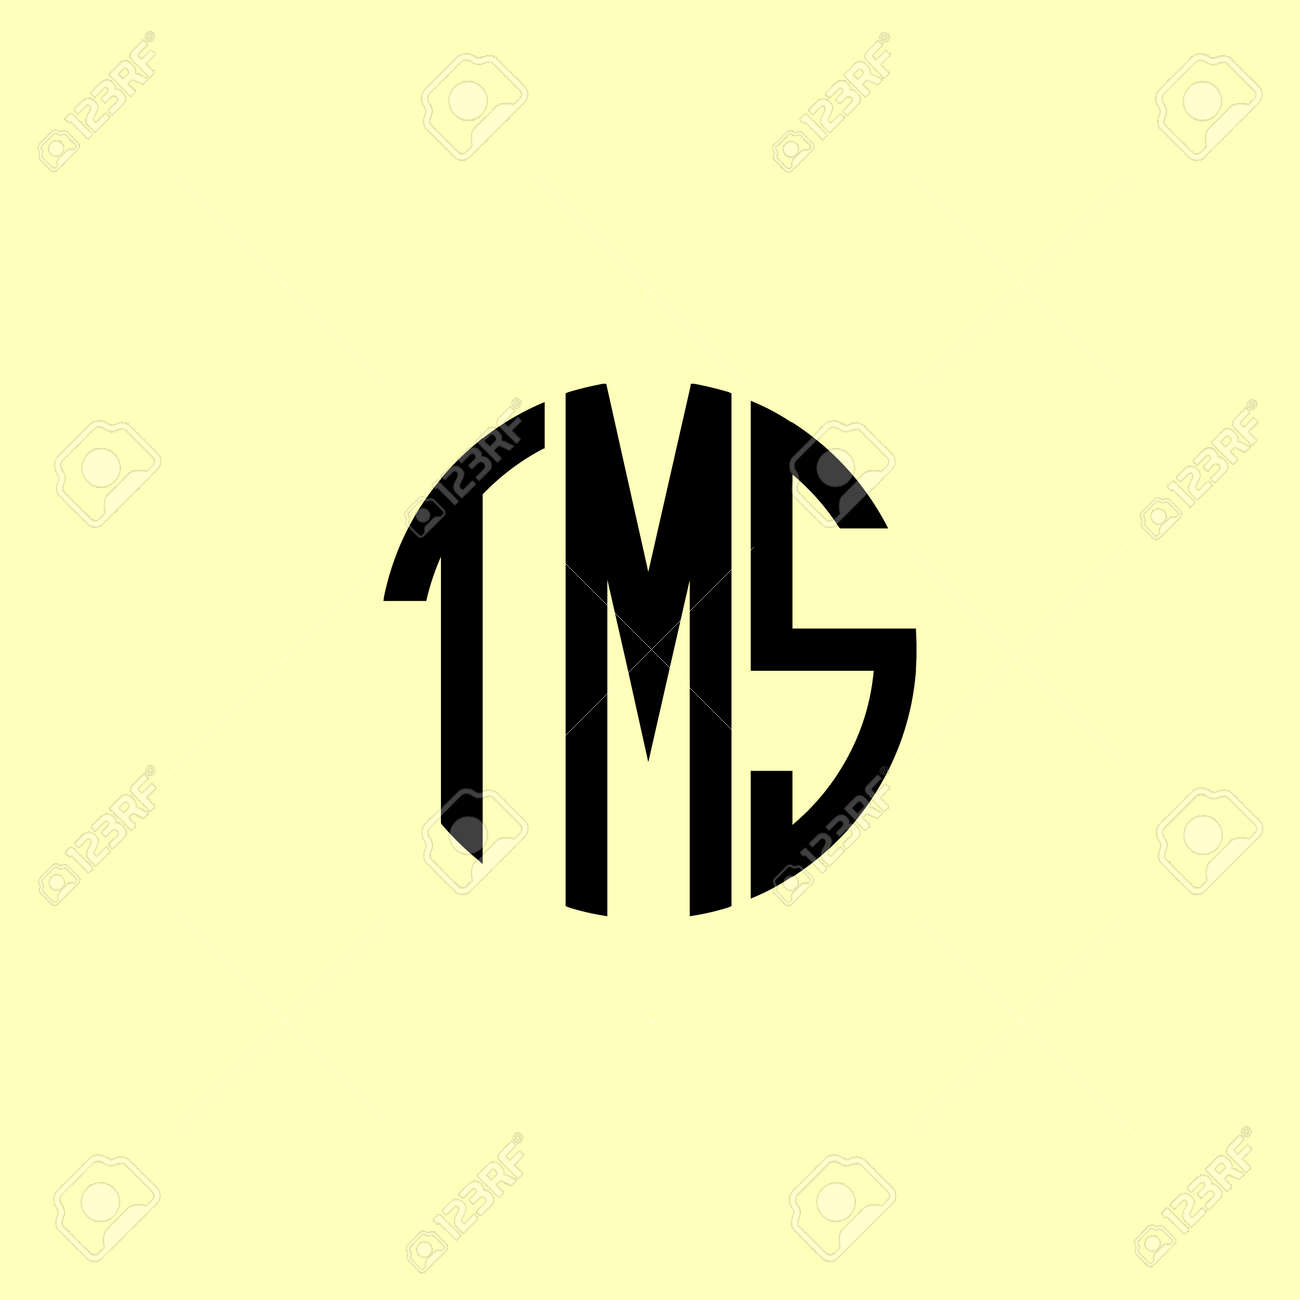 Creative Rounded Initial Letters TMS Logo. It will be suitable for which company or brand name start those initial. - 169465556